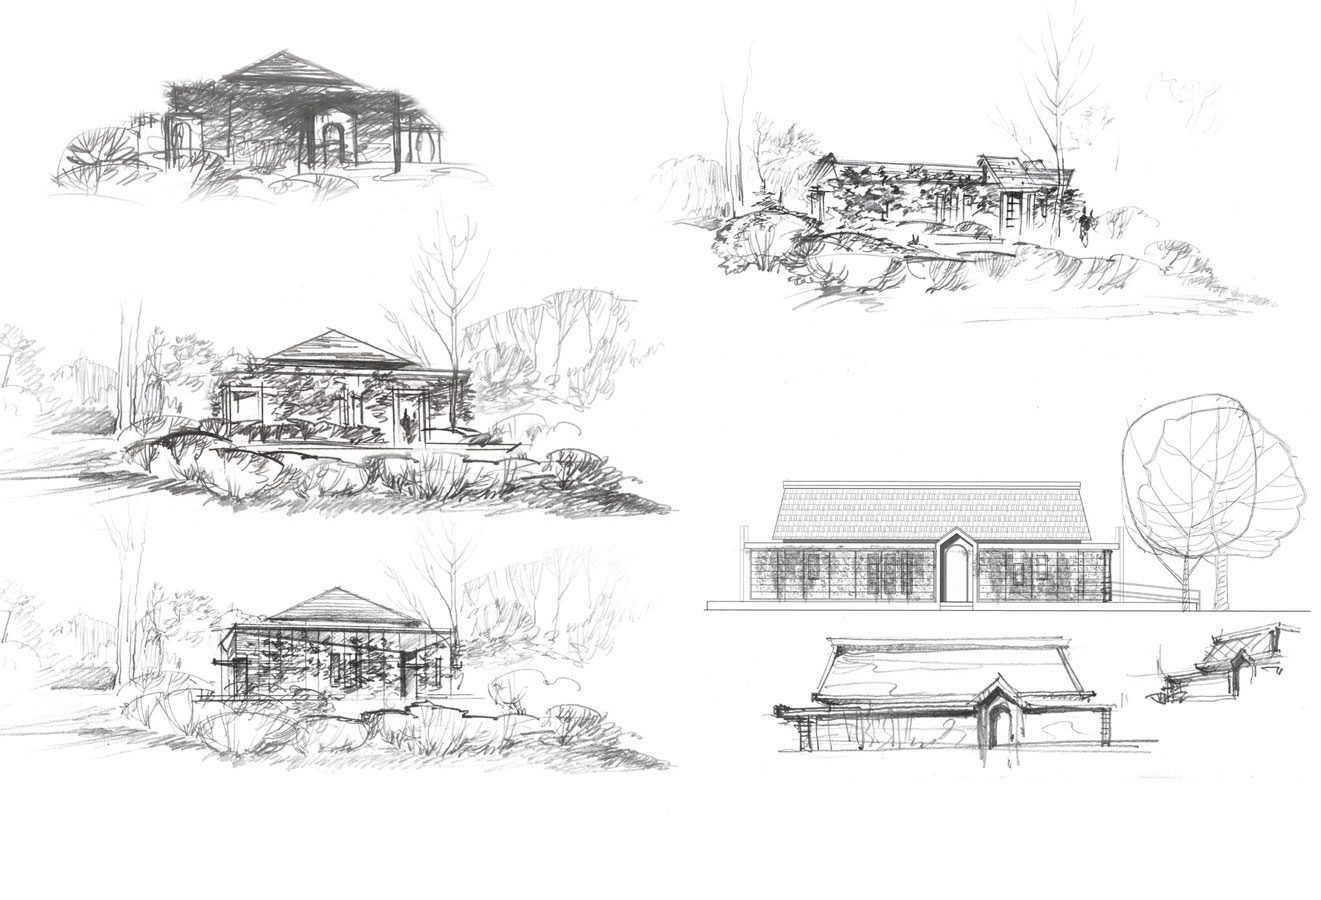 Mikvah  concept design proposal architectural idea freehand pencil conceptual sketches by Shalumov